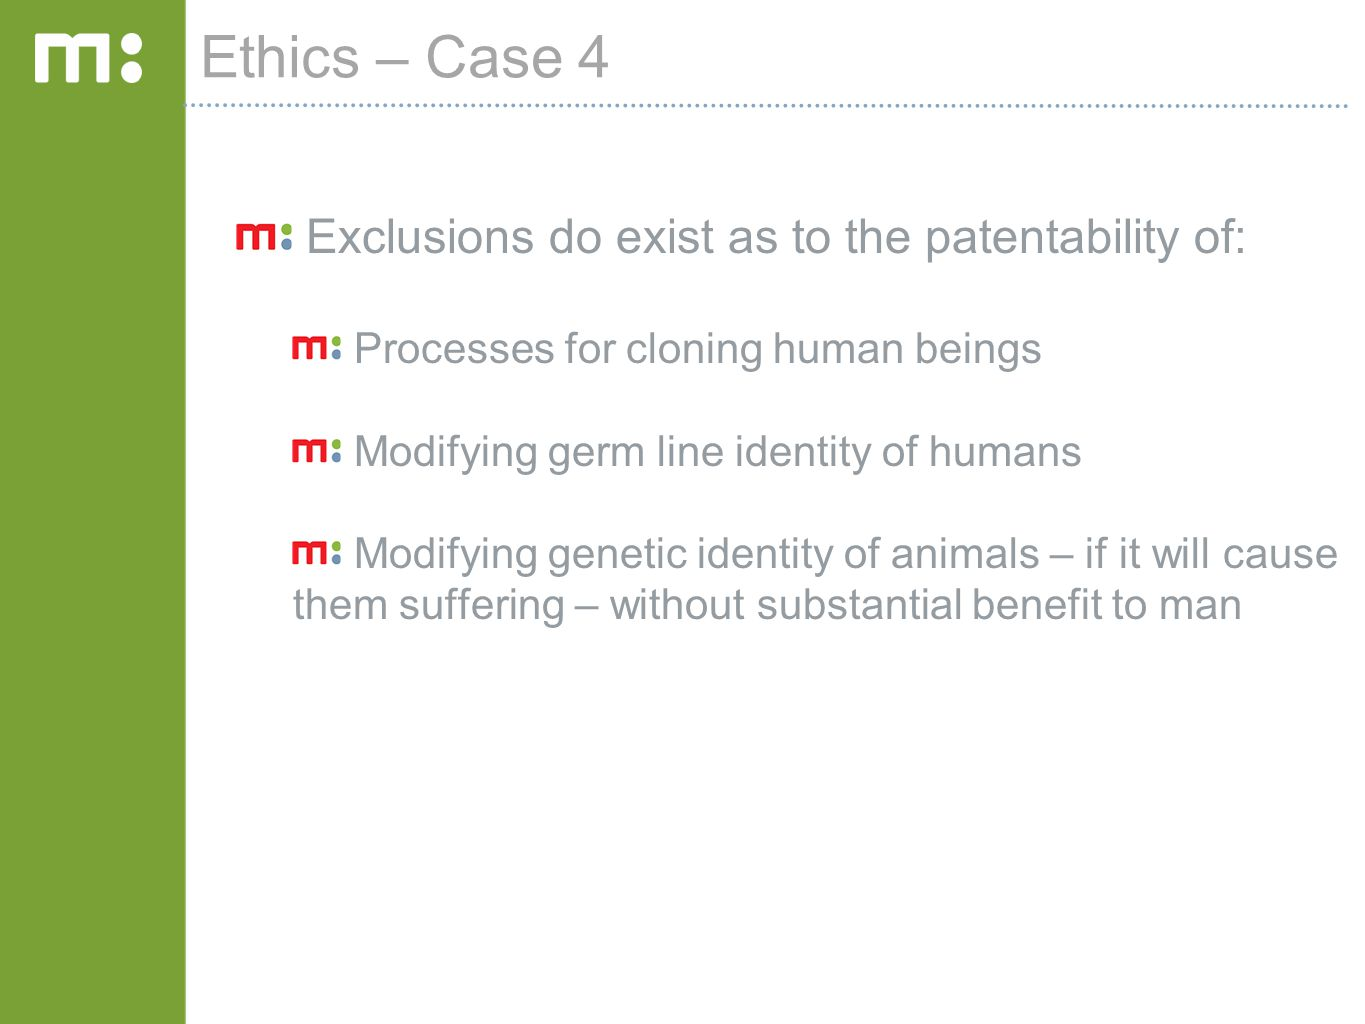 Ethics – Case 4 Exclusions do exist as to the patentability of: Processes for cloning human beings Modifying germ line identity of humans Modifying genetic identity of animals – if it will cause them suffering – without substantial benefit to man